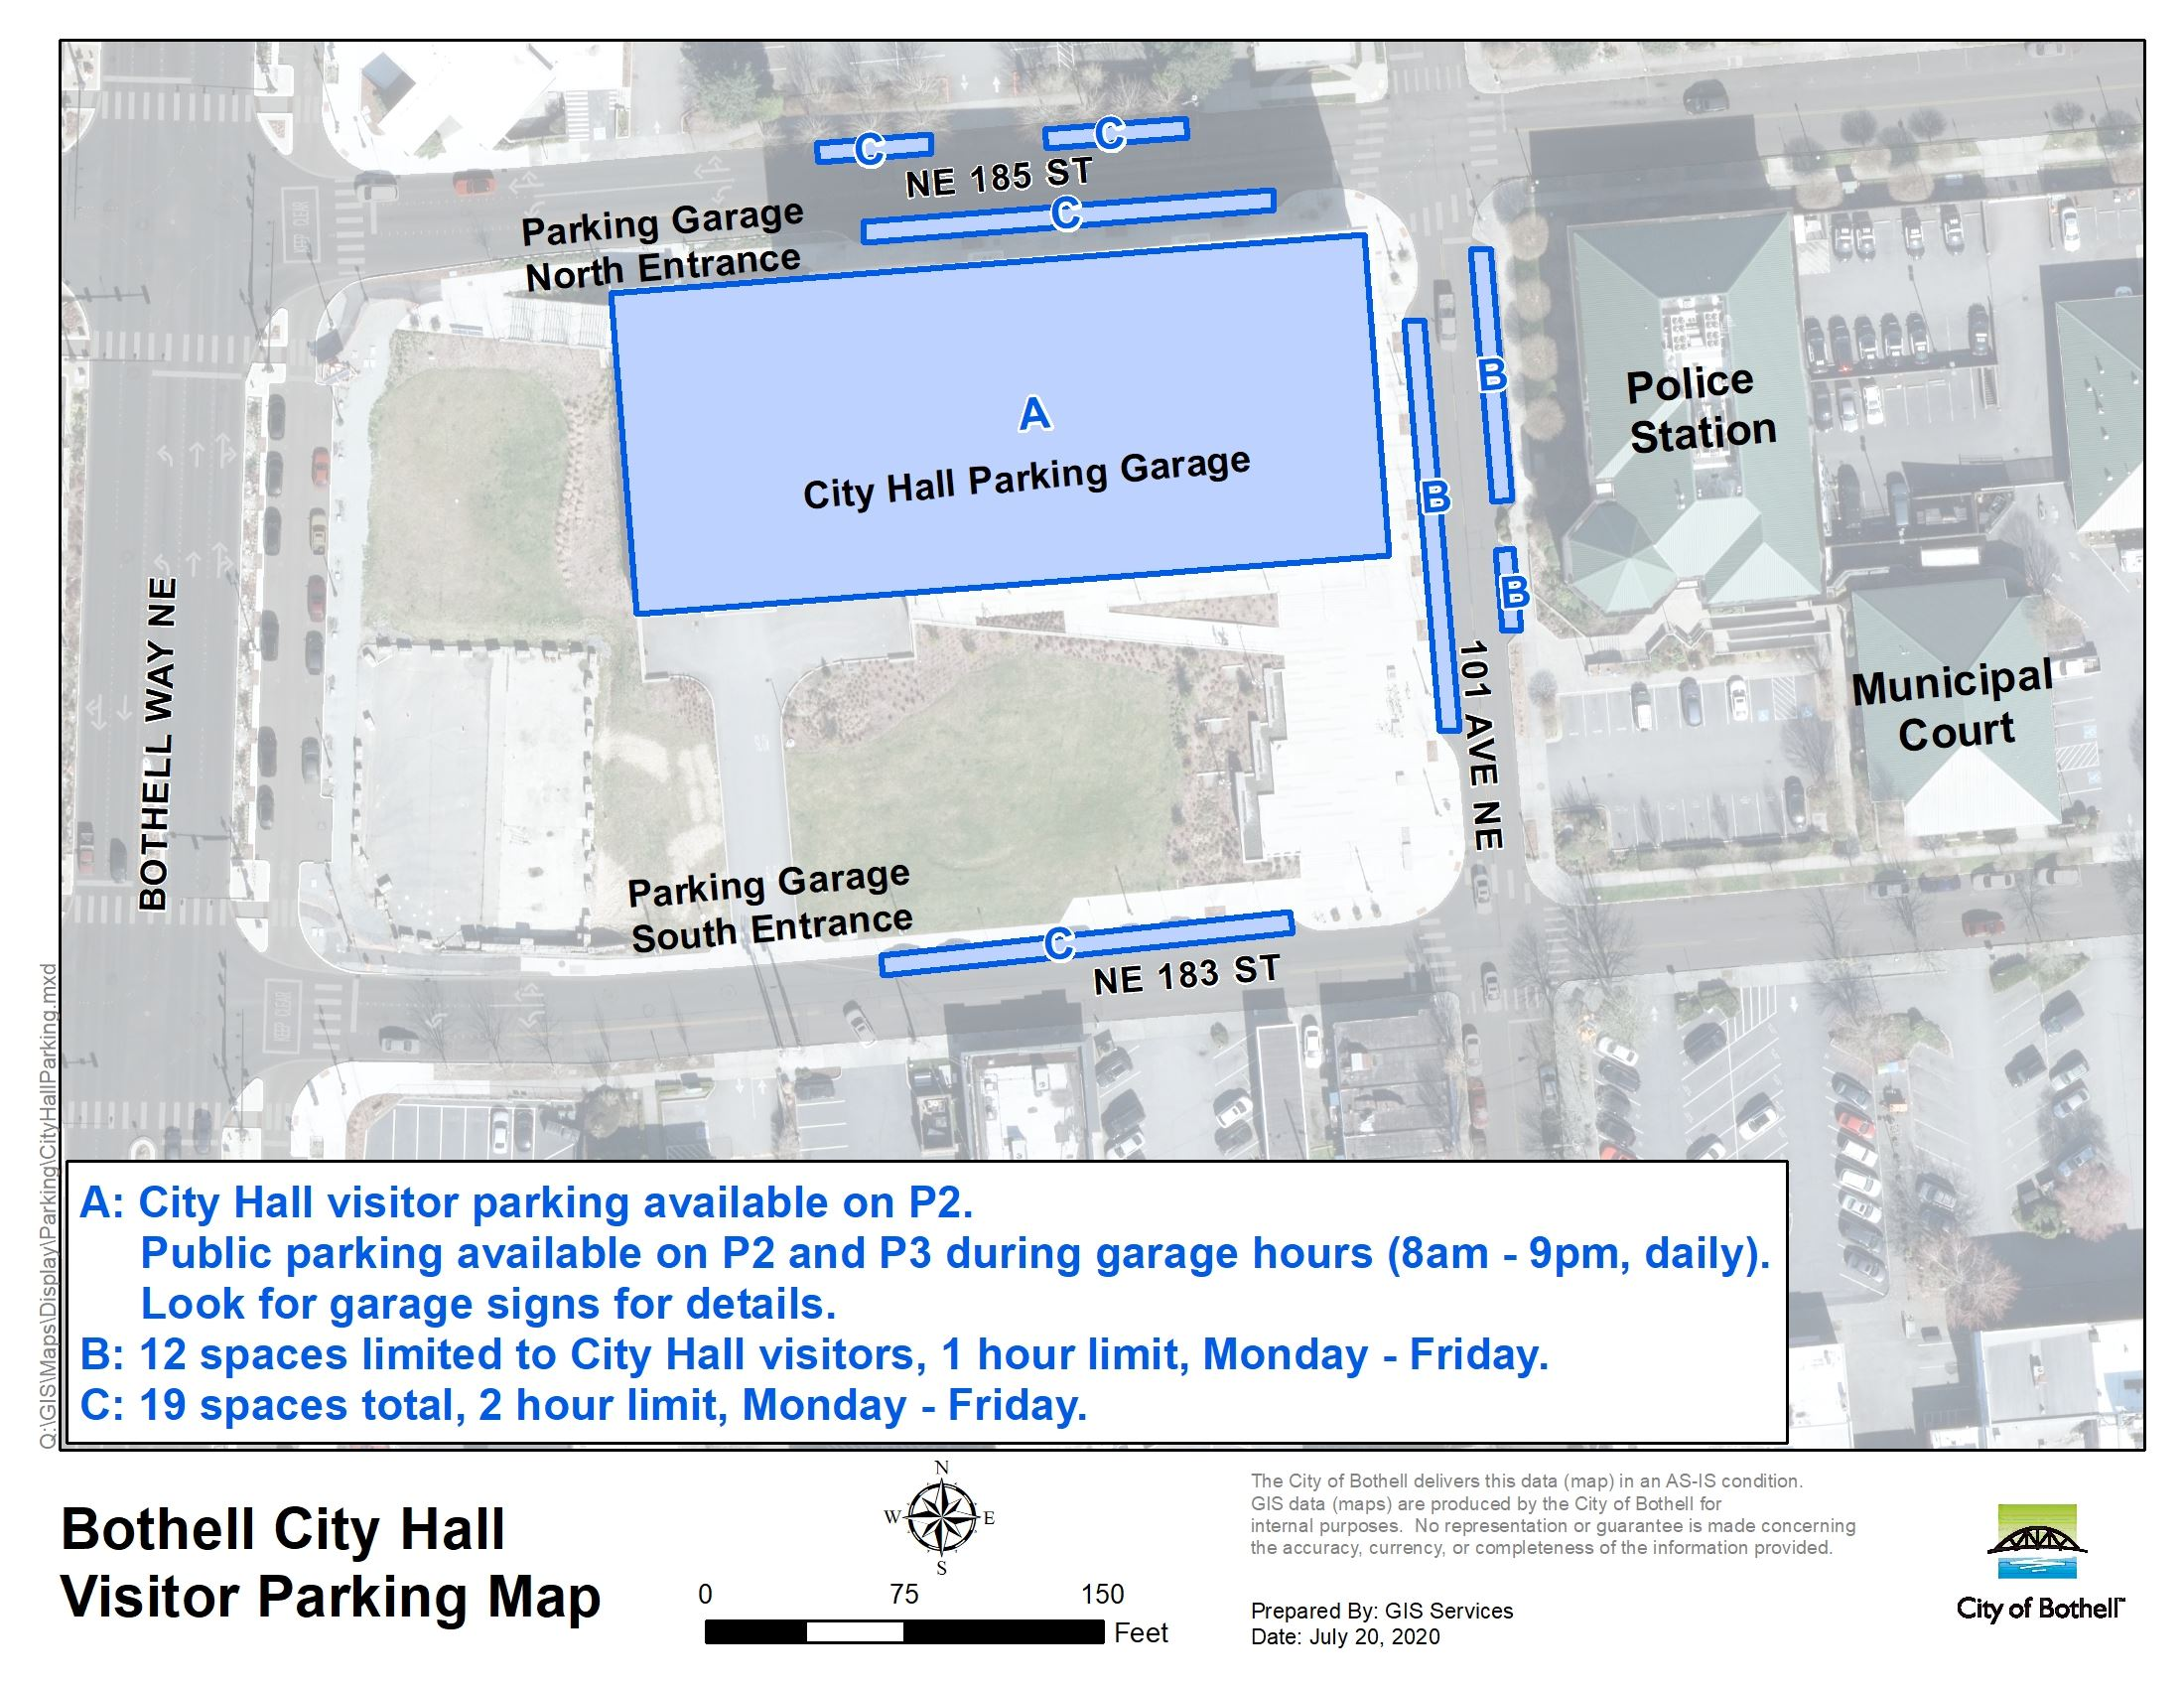 City Hall Parking Map